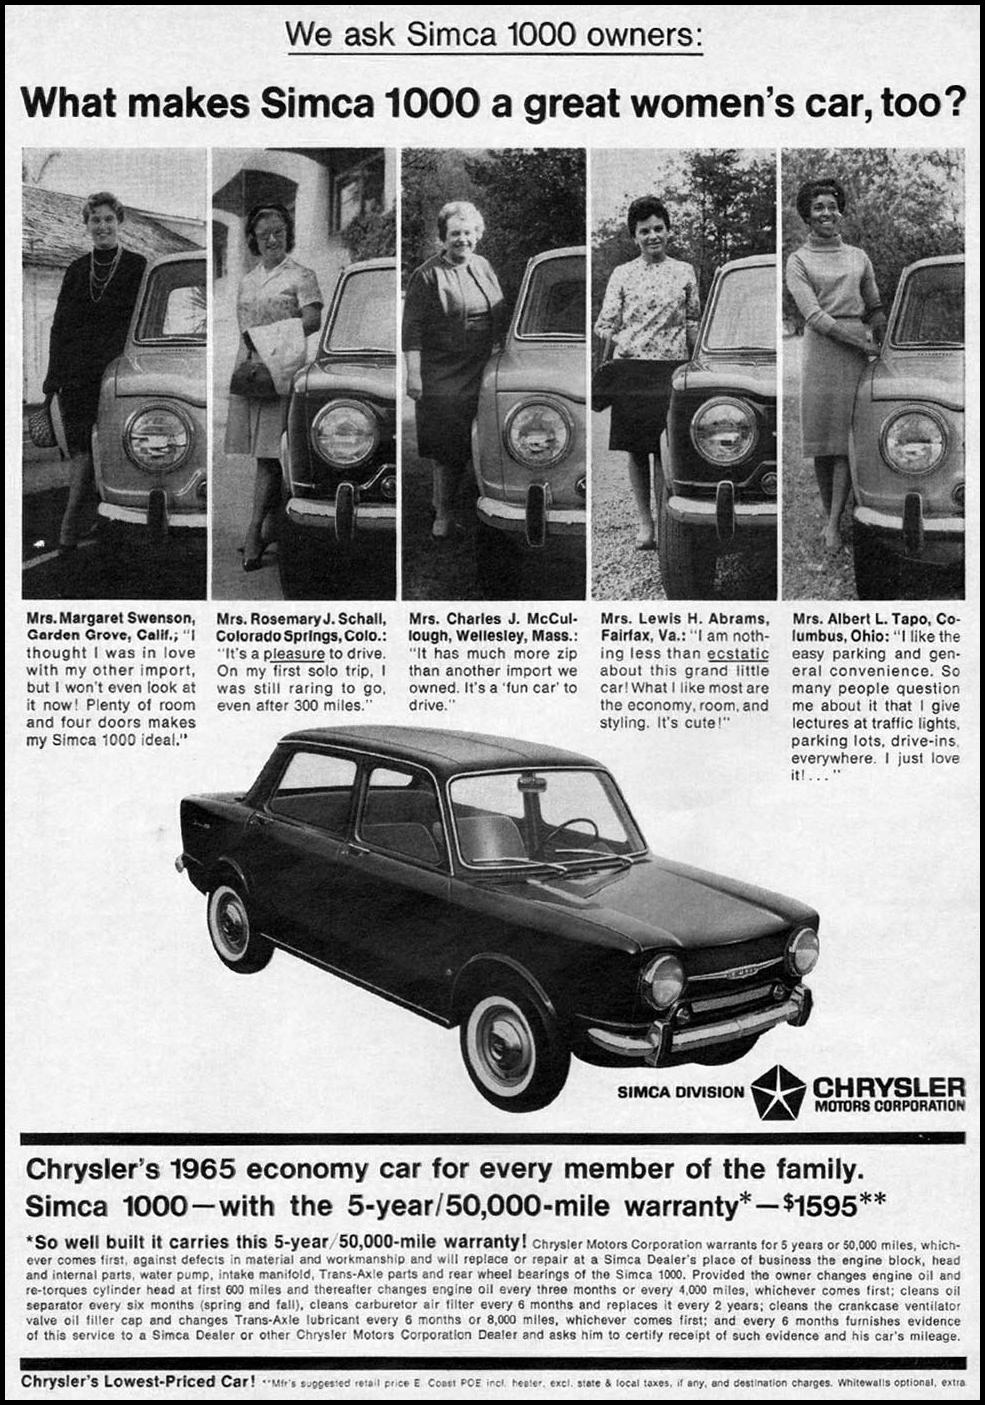 SIMCA AUTOMOBILES NEWSWEEK 10/12/1964